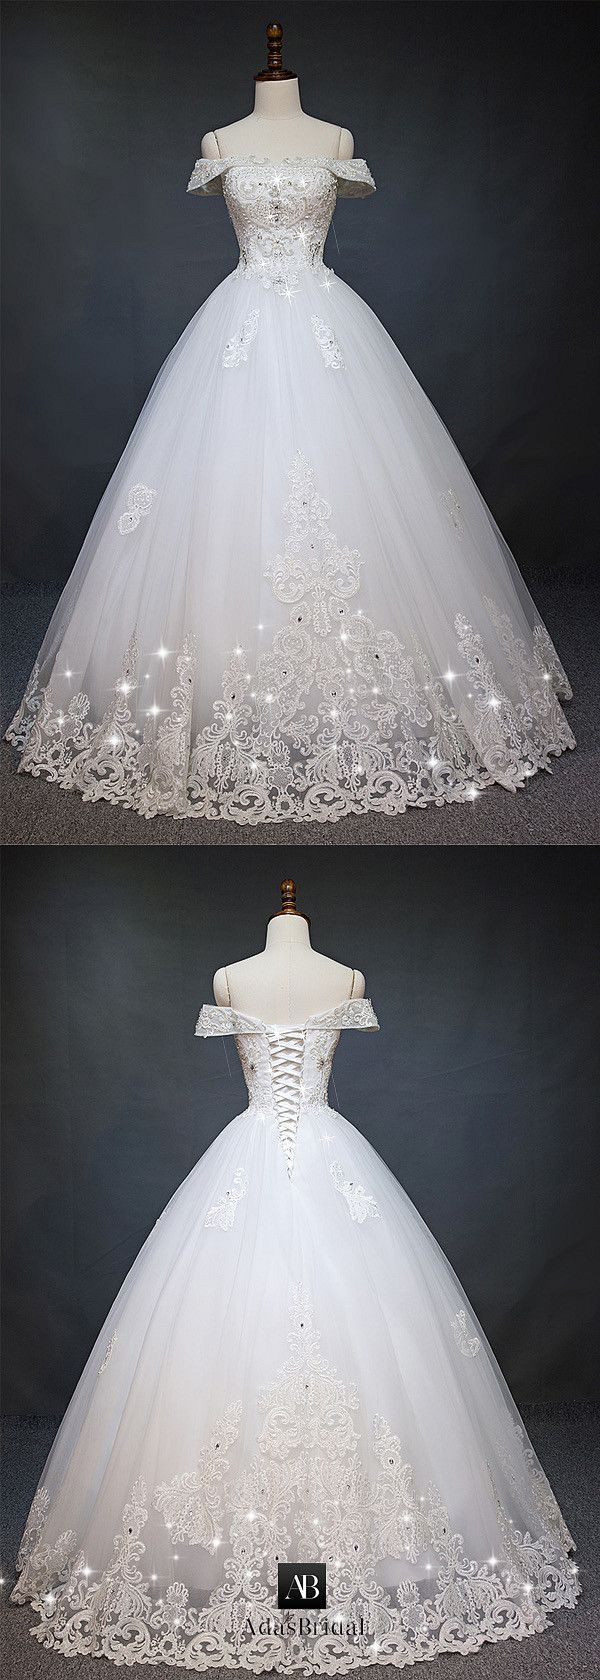 Gorgeous Tulle Off-the-Shoulder Neckline Ball Gown Wedding Dress With Lace Appliques & Beadings #laceweddingdresses